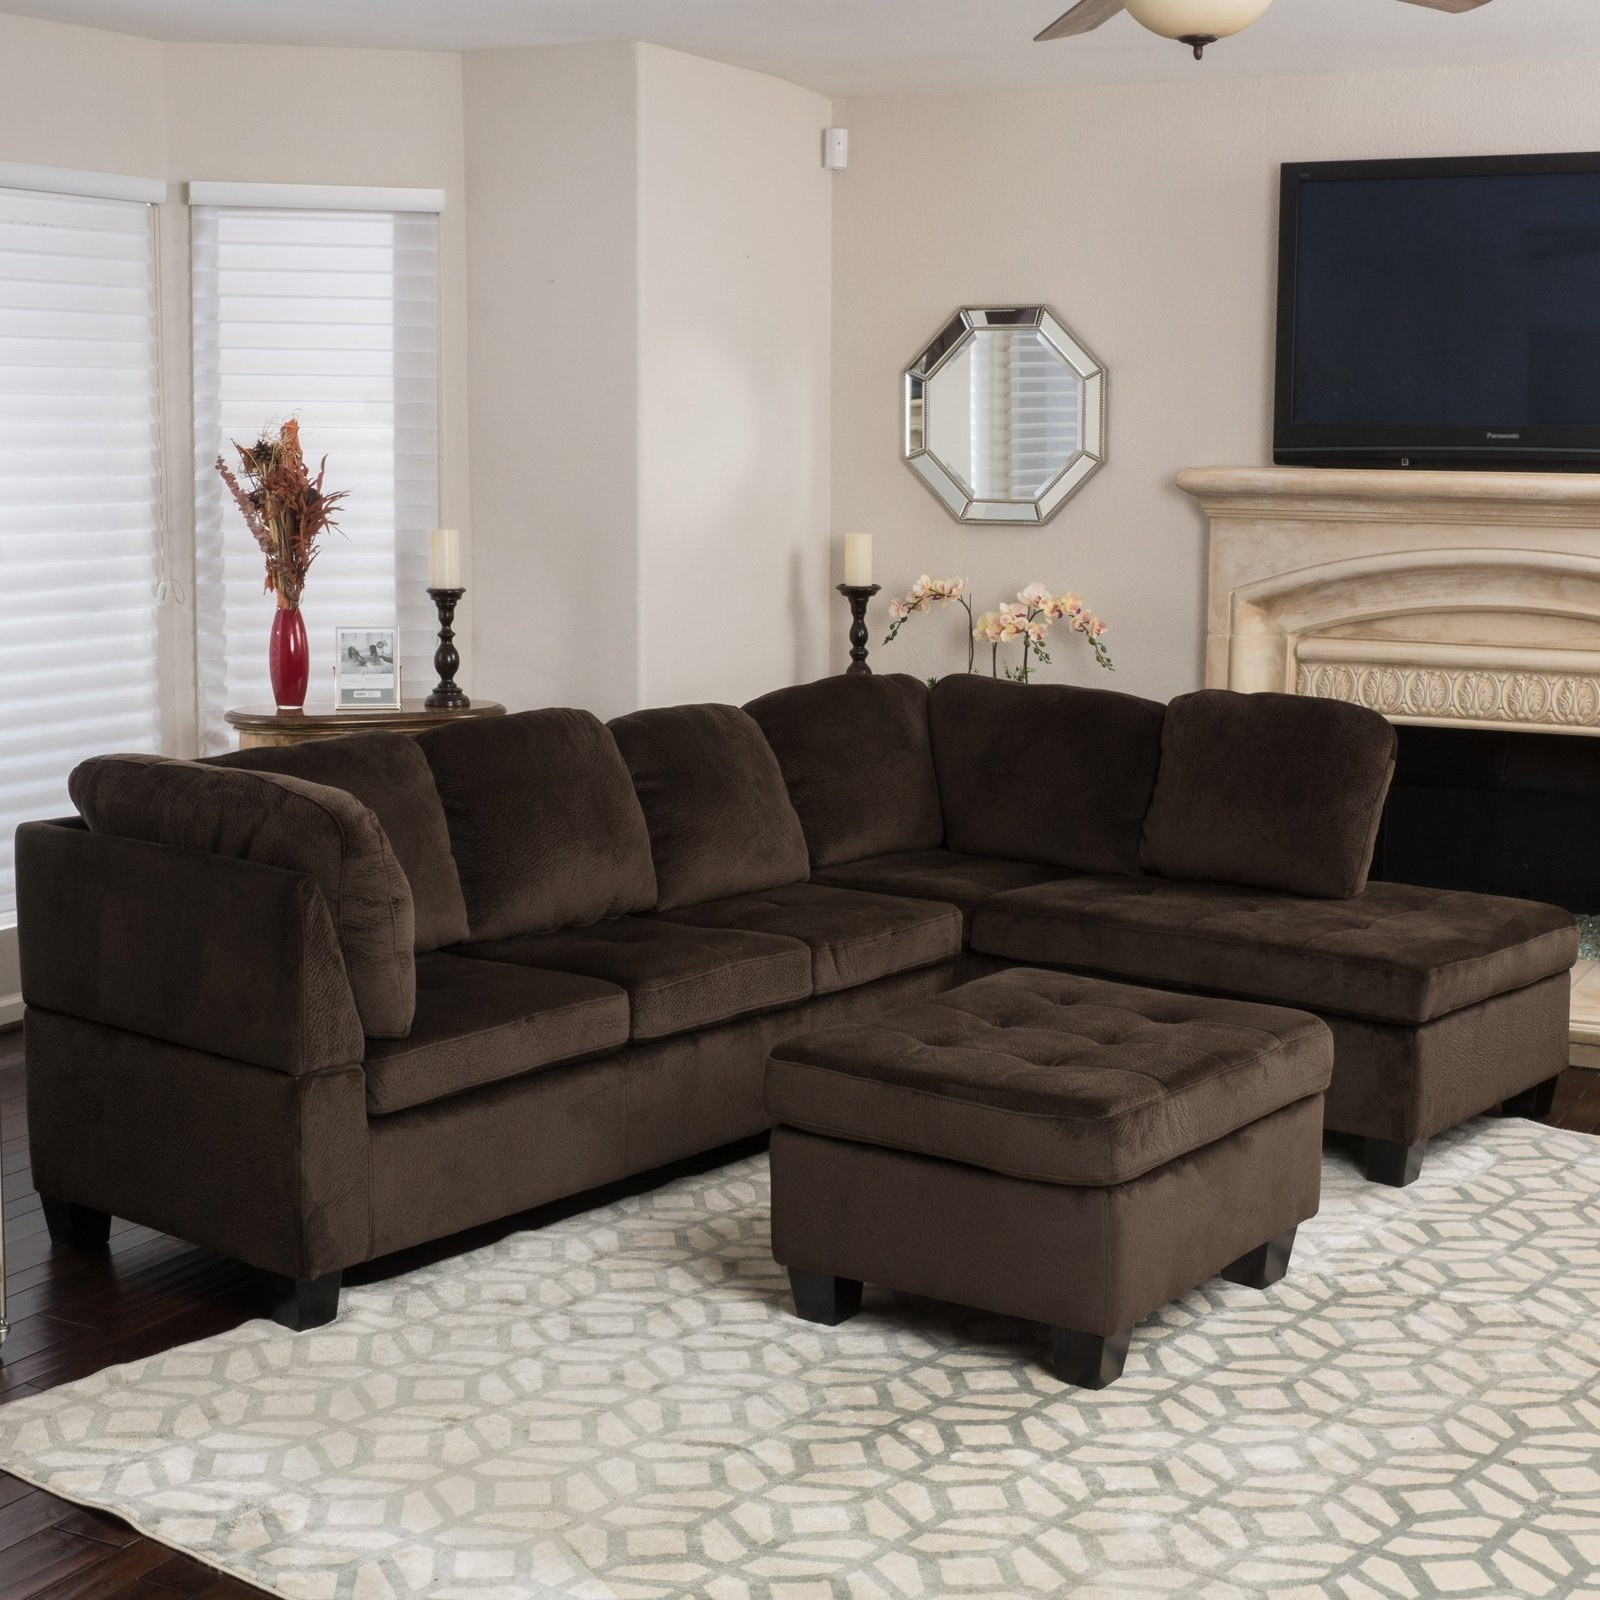 3 Piece Sectional Sofa Dimensions | Baci Living Room Pertaining To Malbry Point 3 Piece Sectionals With Raf Chaise (Photo 19 of 25)